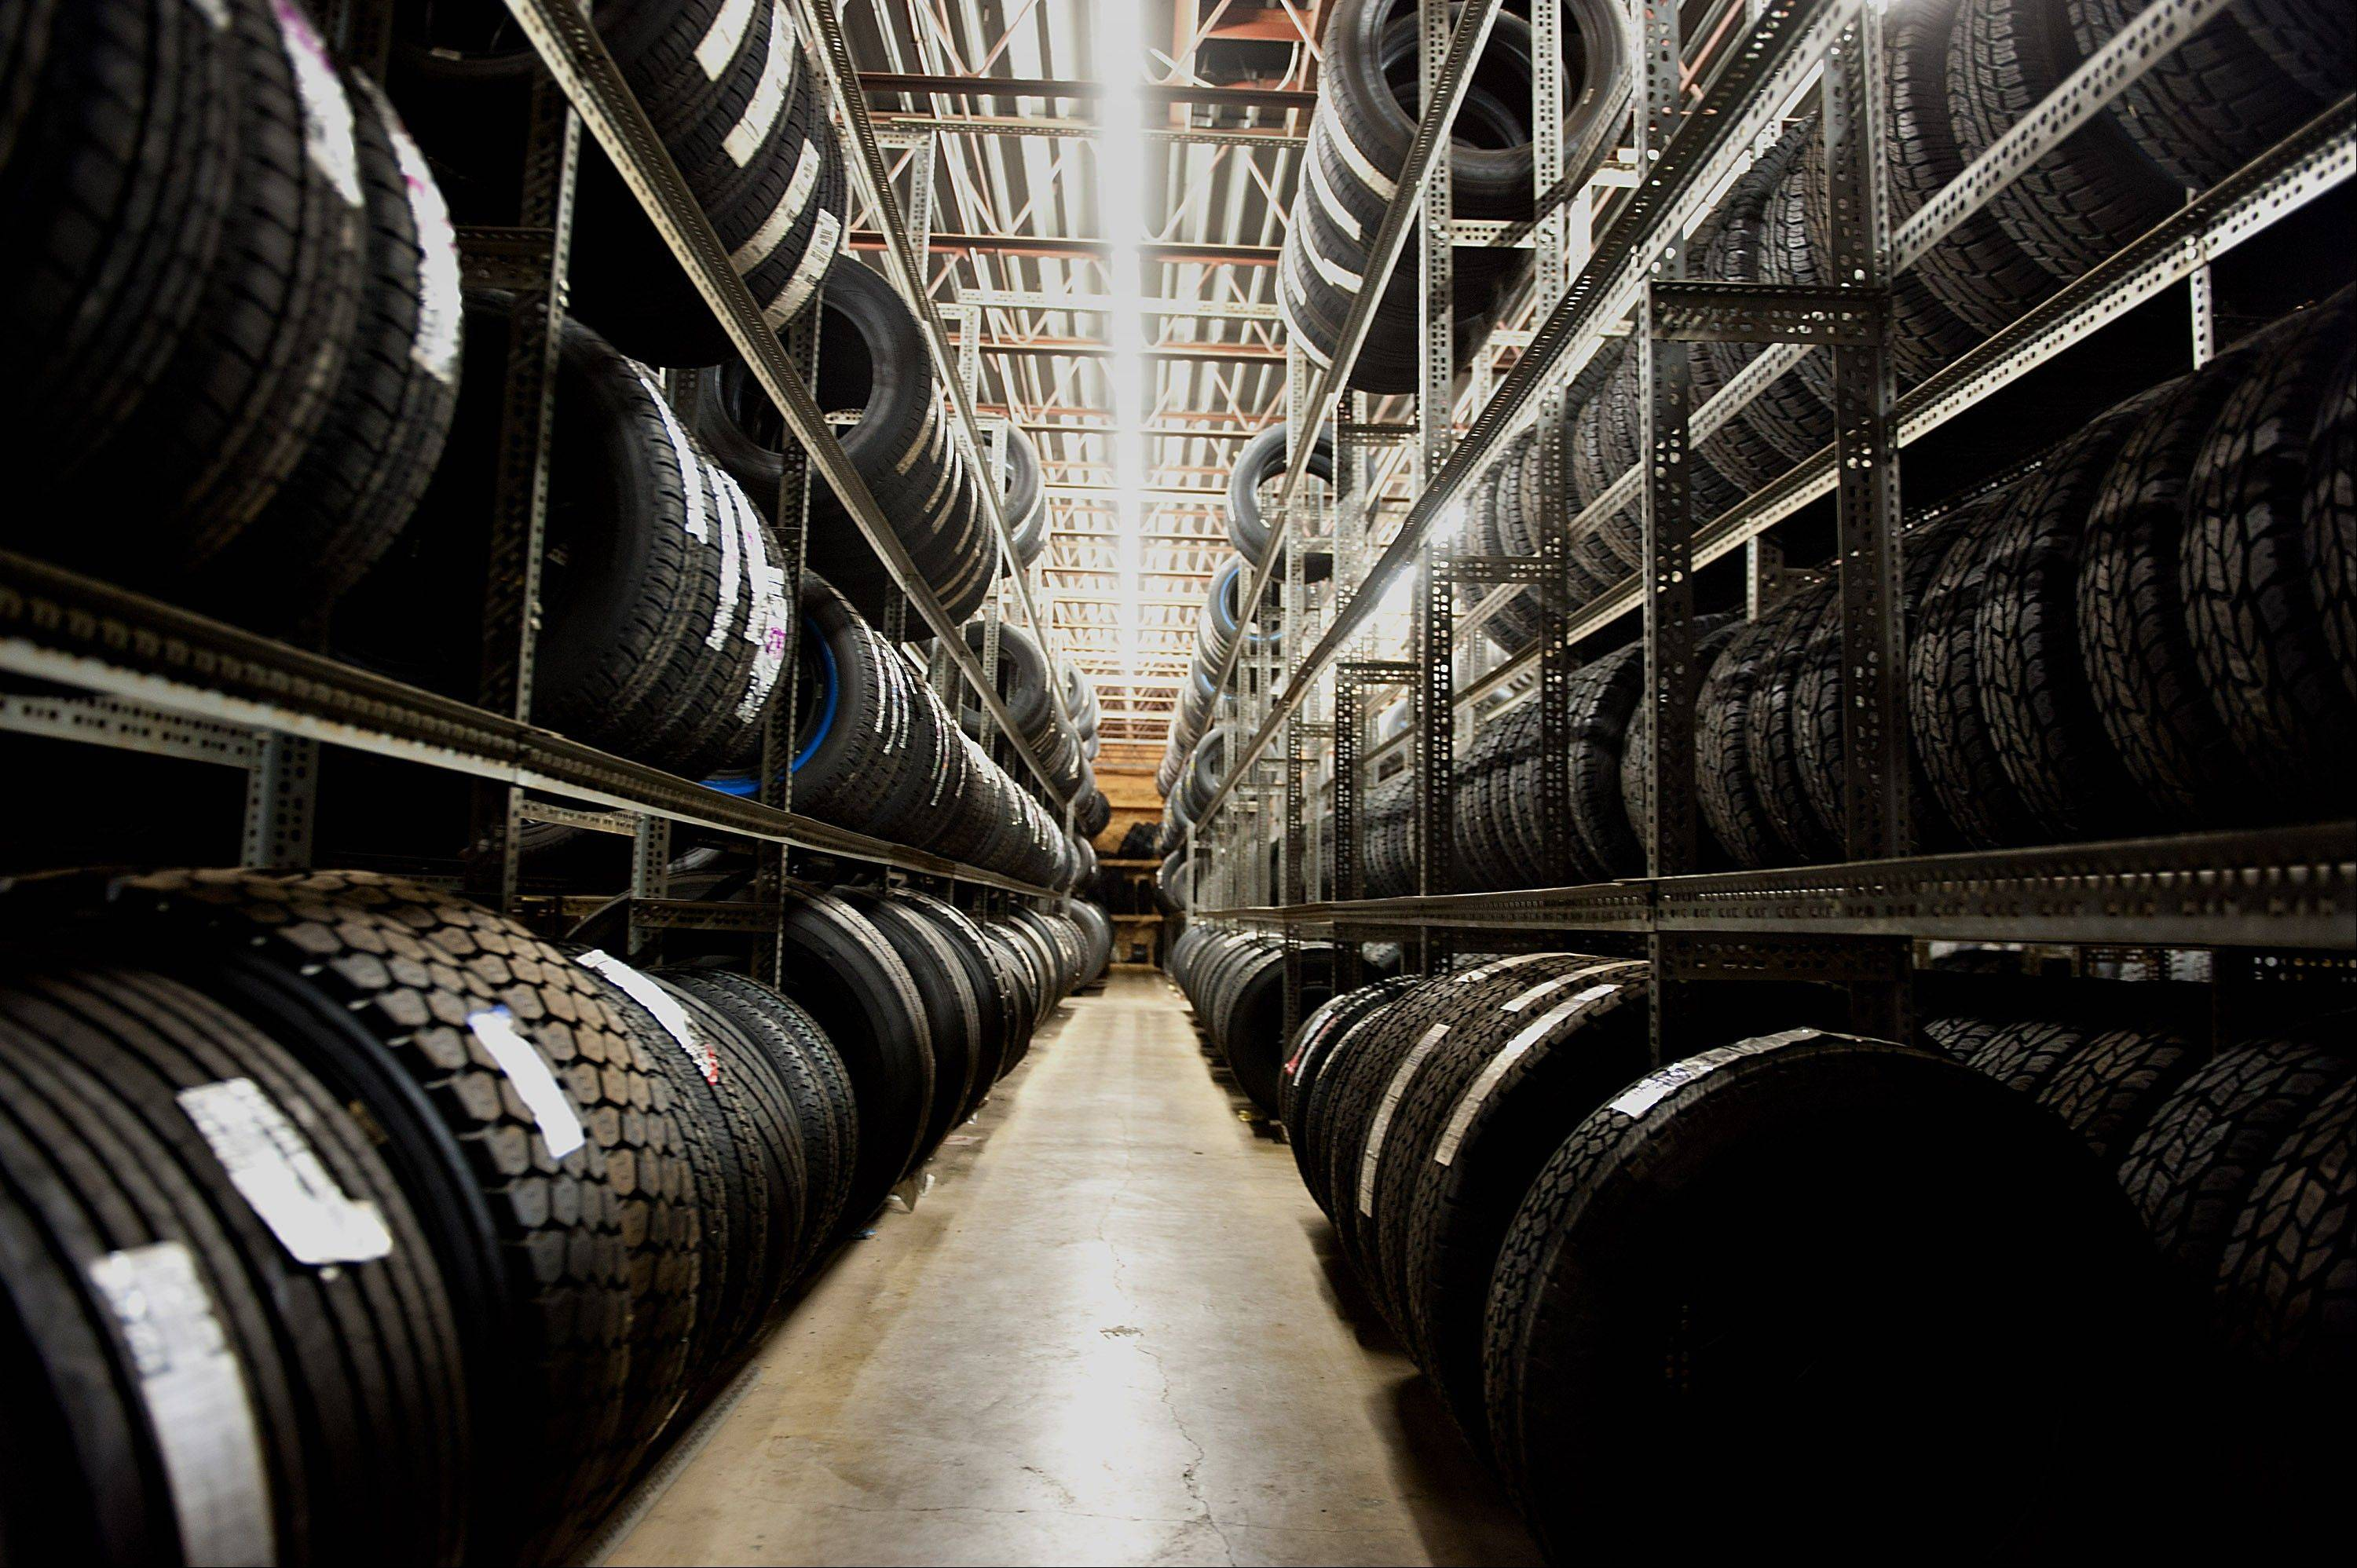 Goodyear Tire & Rubber Co. vehicle tires sit in a storage room at Keister's Tire Center in Kewanee, Illinois.